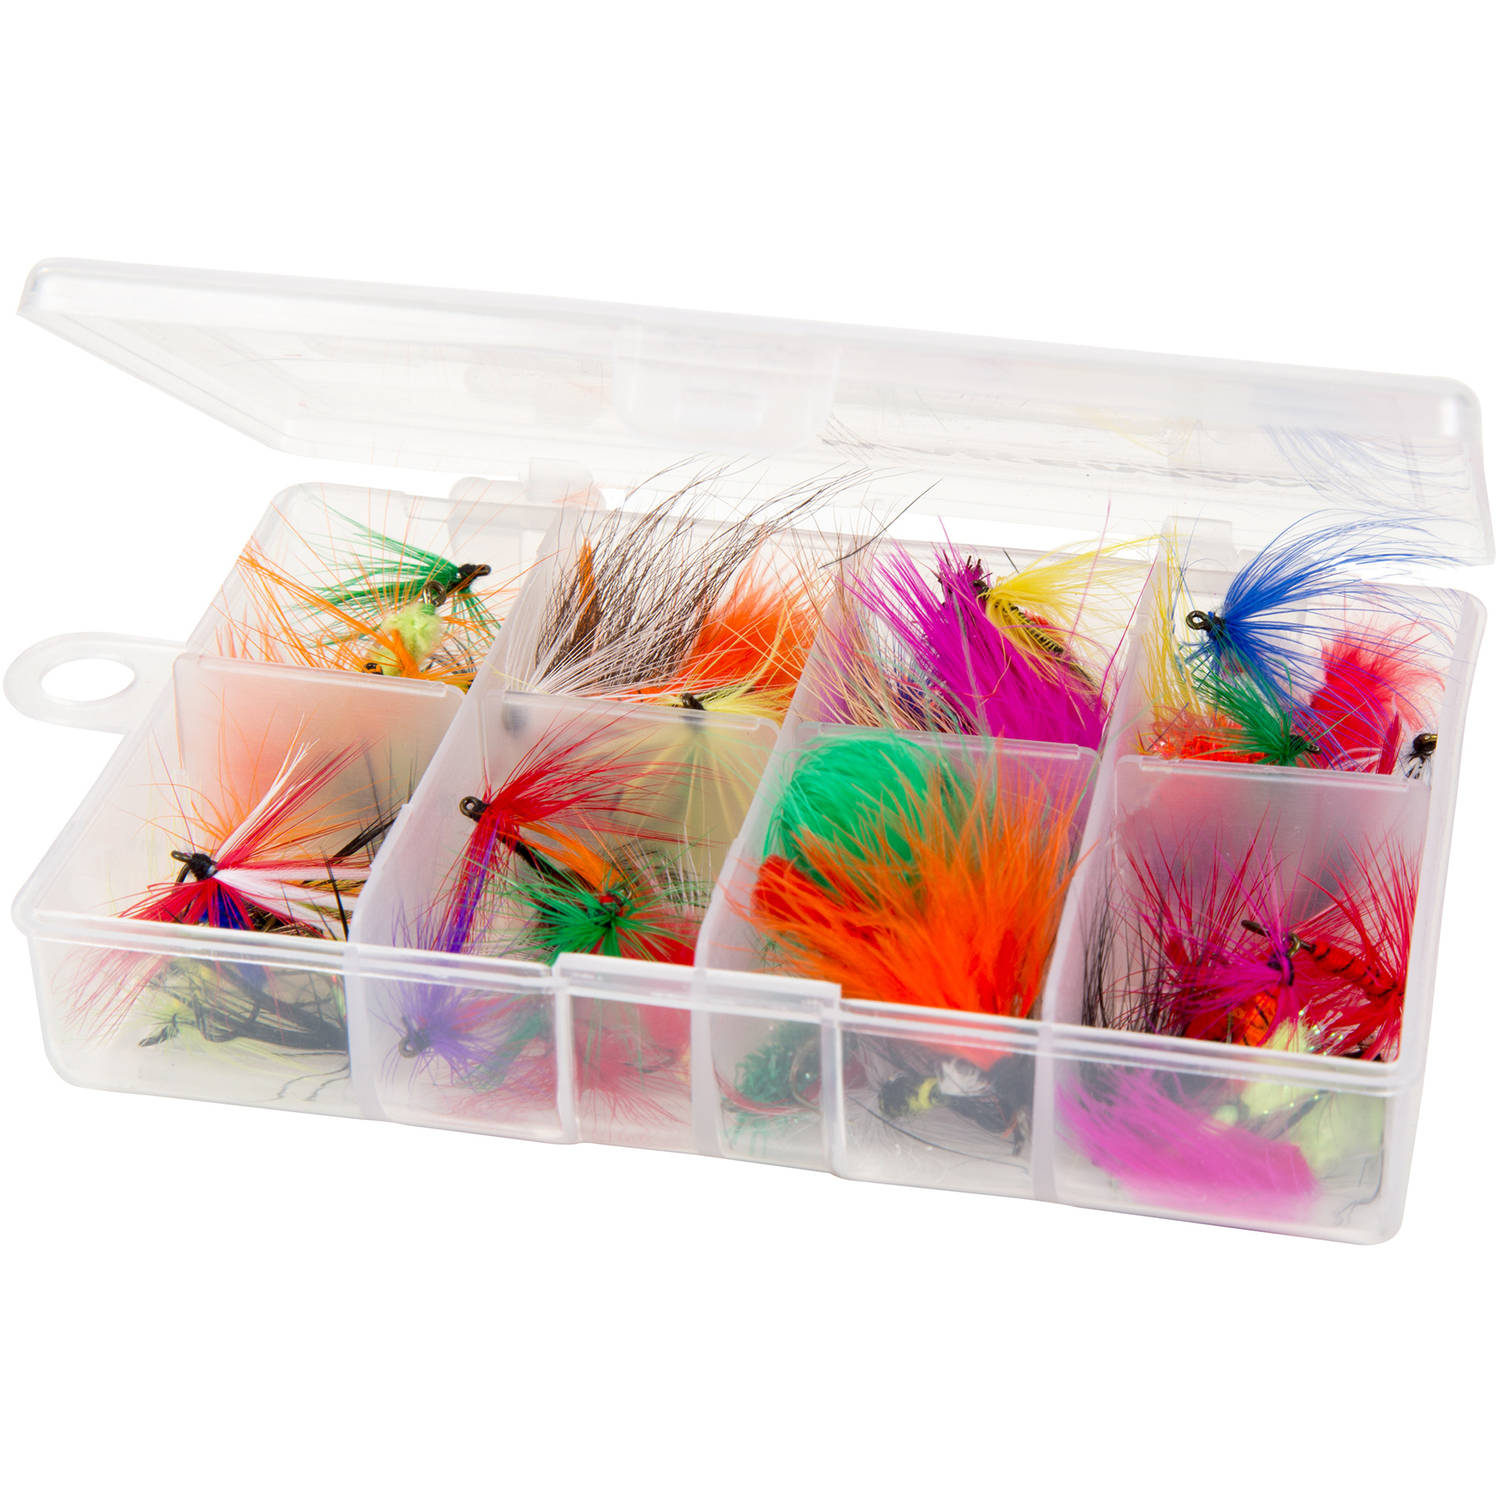 Fly Fishing Lures- 50 Brightly Colored Assorted Dry Insect Flies, Fishing Equipment for Catch and Release in Organizer Tool Box by Wakeman Outdoors